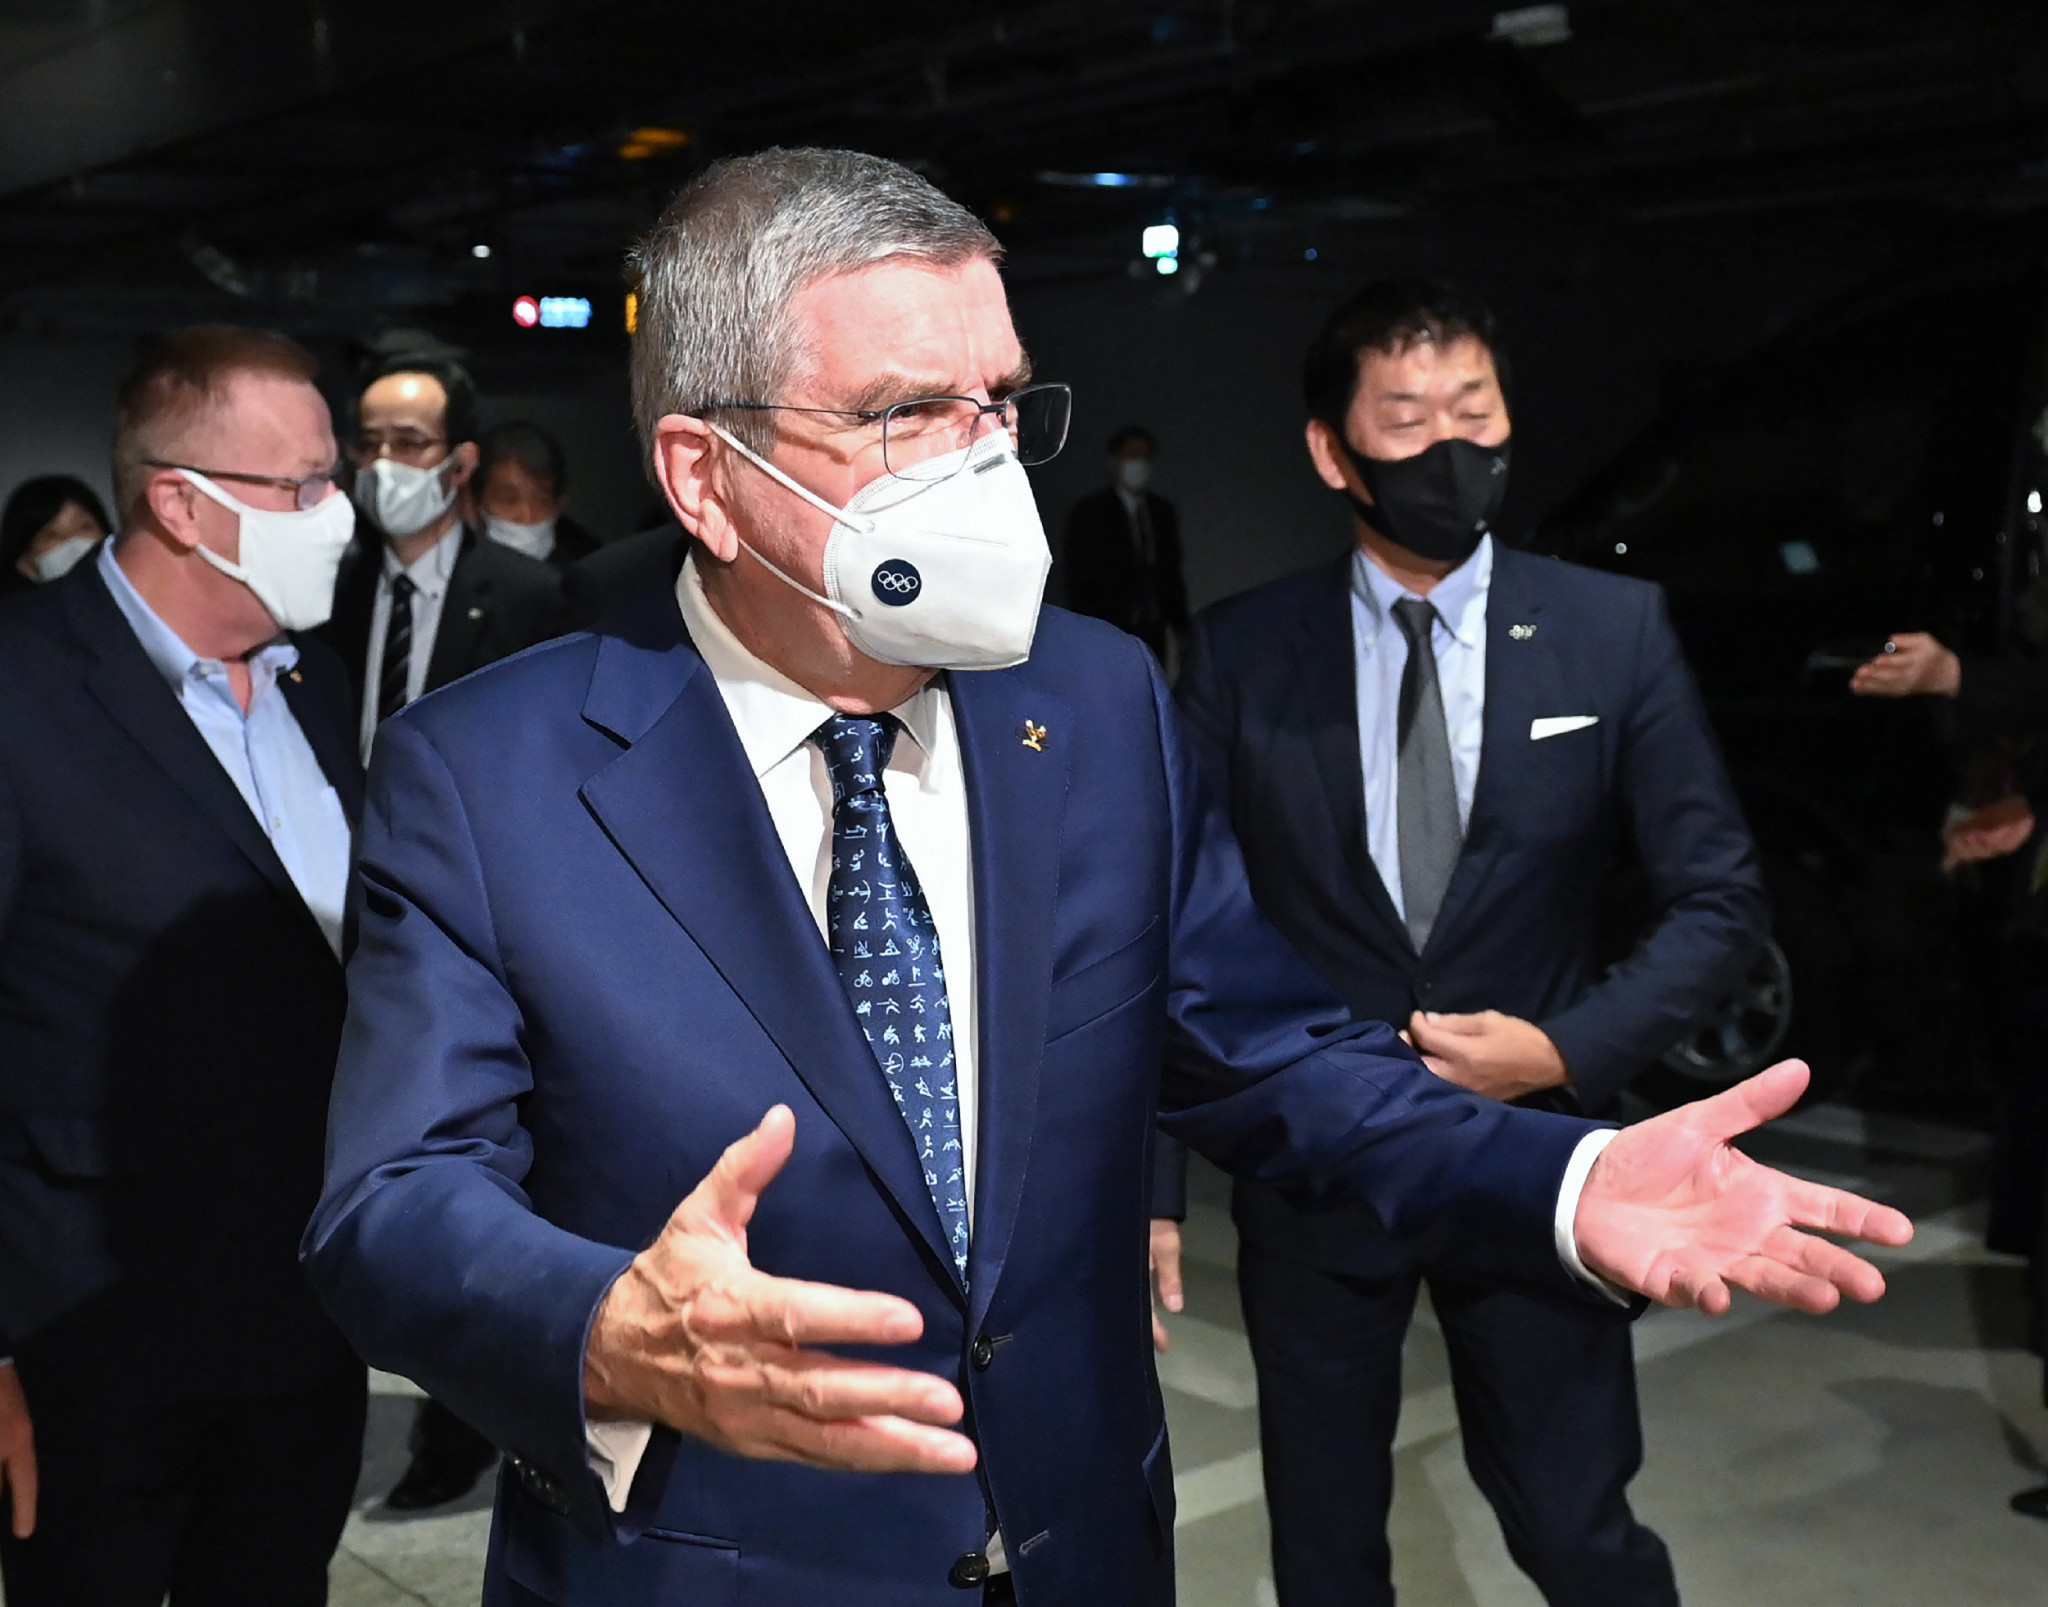 Thomas Bach is in Tokyo, where he will meet political leaders and see Games venues ©Getty Images